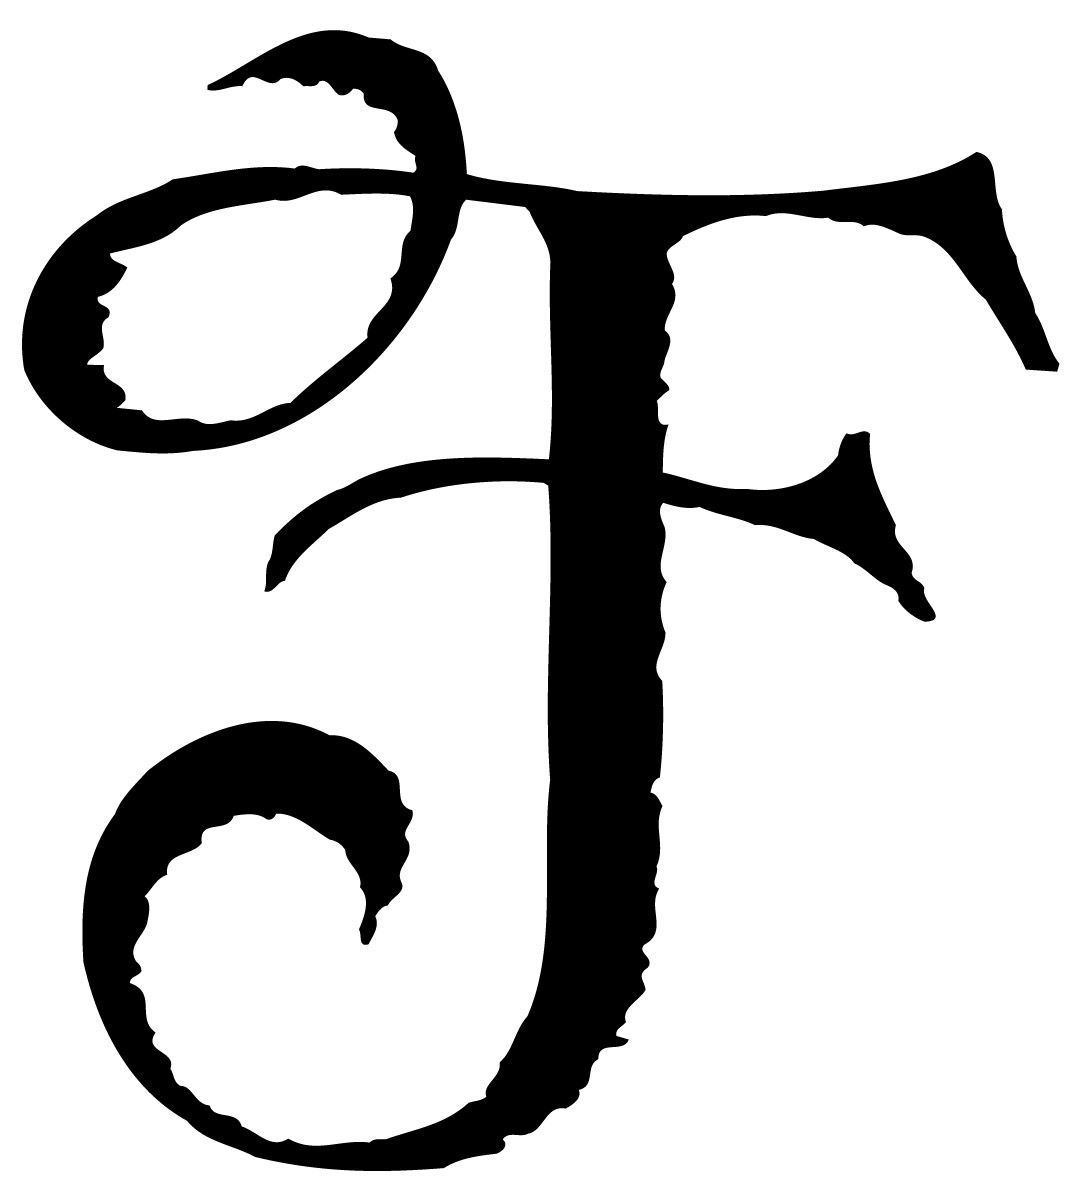 Worksheet Cursive Letter F 78 best images about letter project on pinterest typography calligraphy and lettering